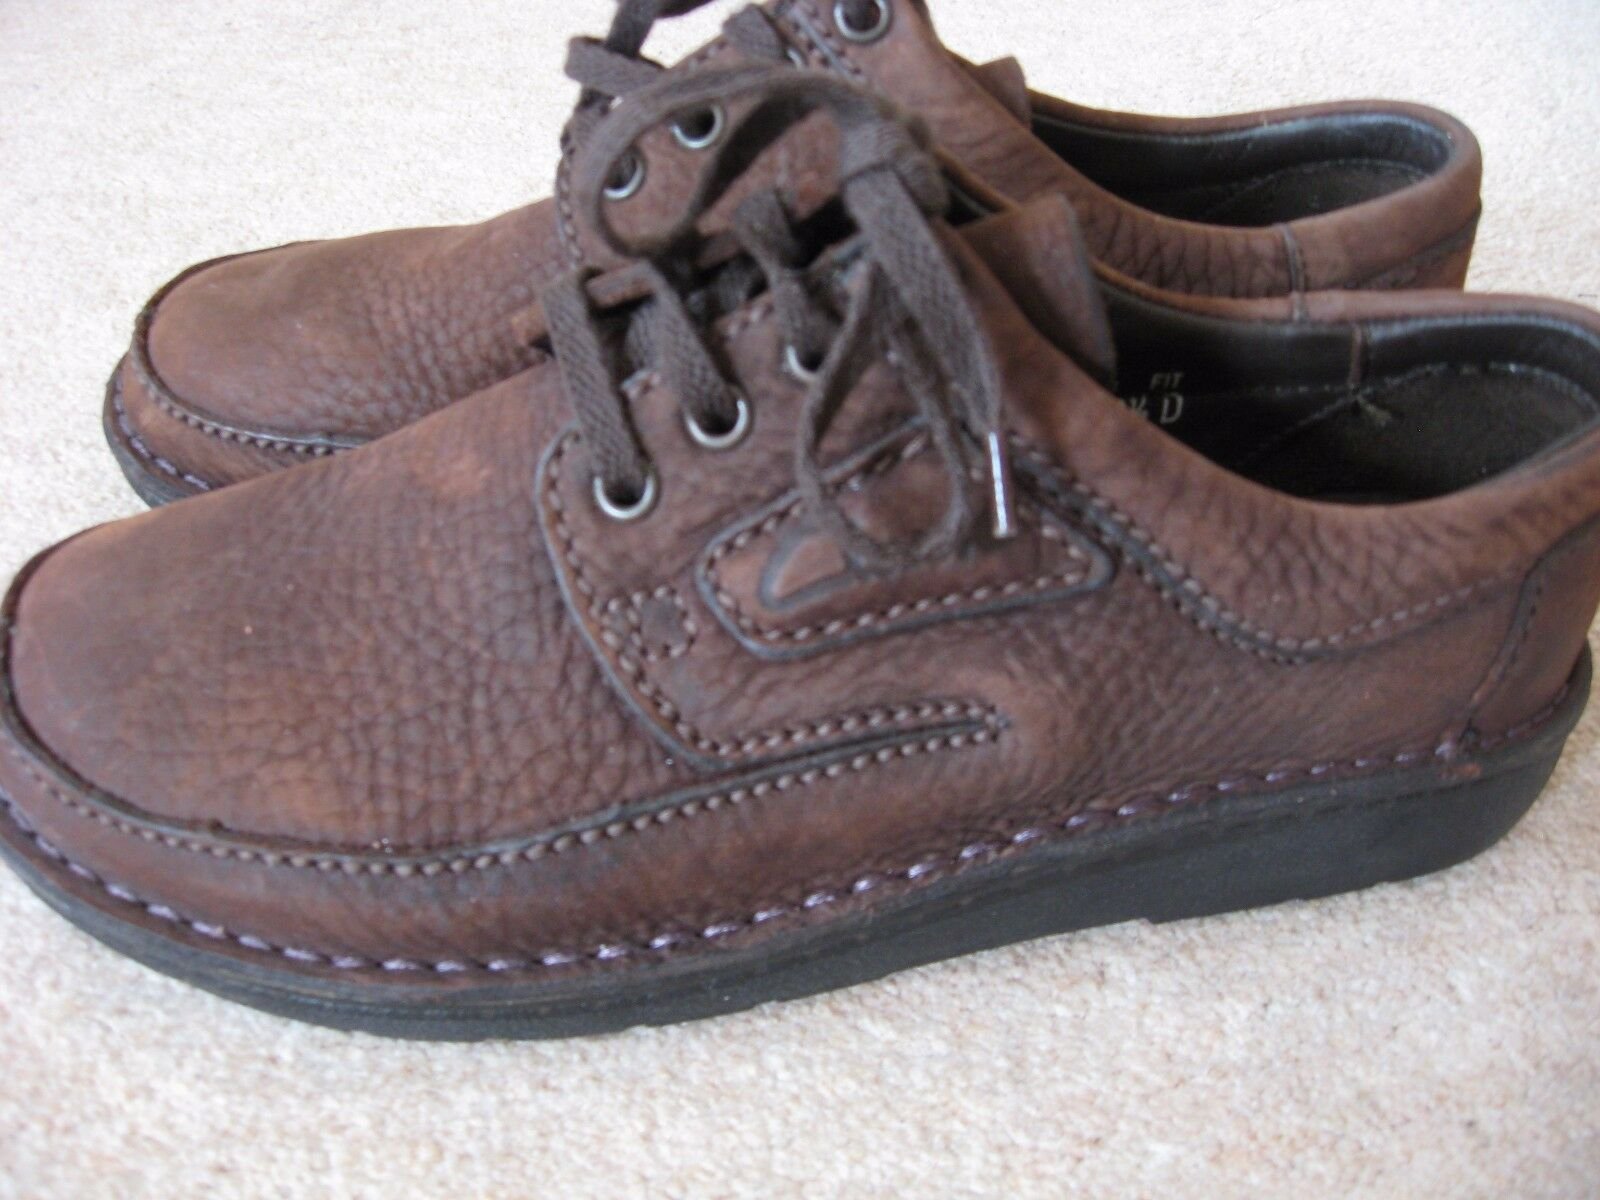 NEW WOMEN'S CLARK'S LEATHER NUBUCK SUEDE PASTY SHOES CHOC 5D BROWN LACE UPS UK 5D CHOC 0936b9